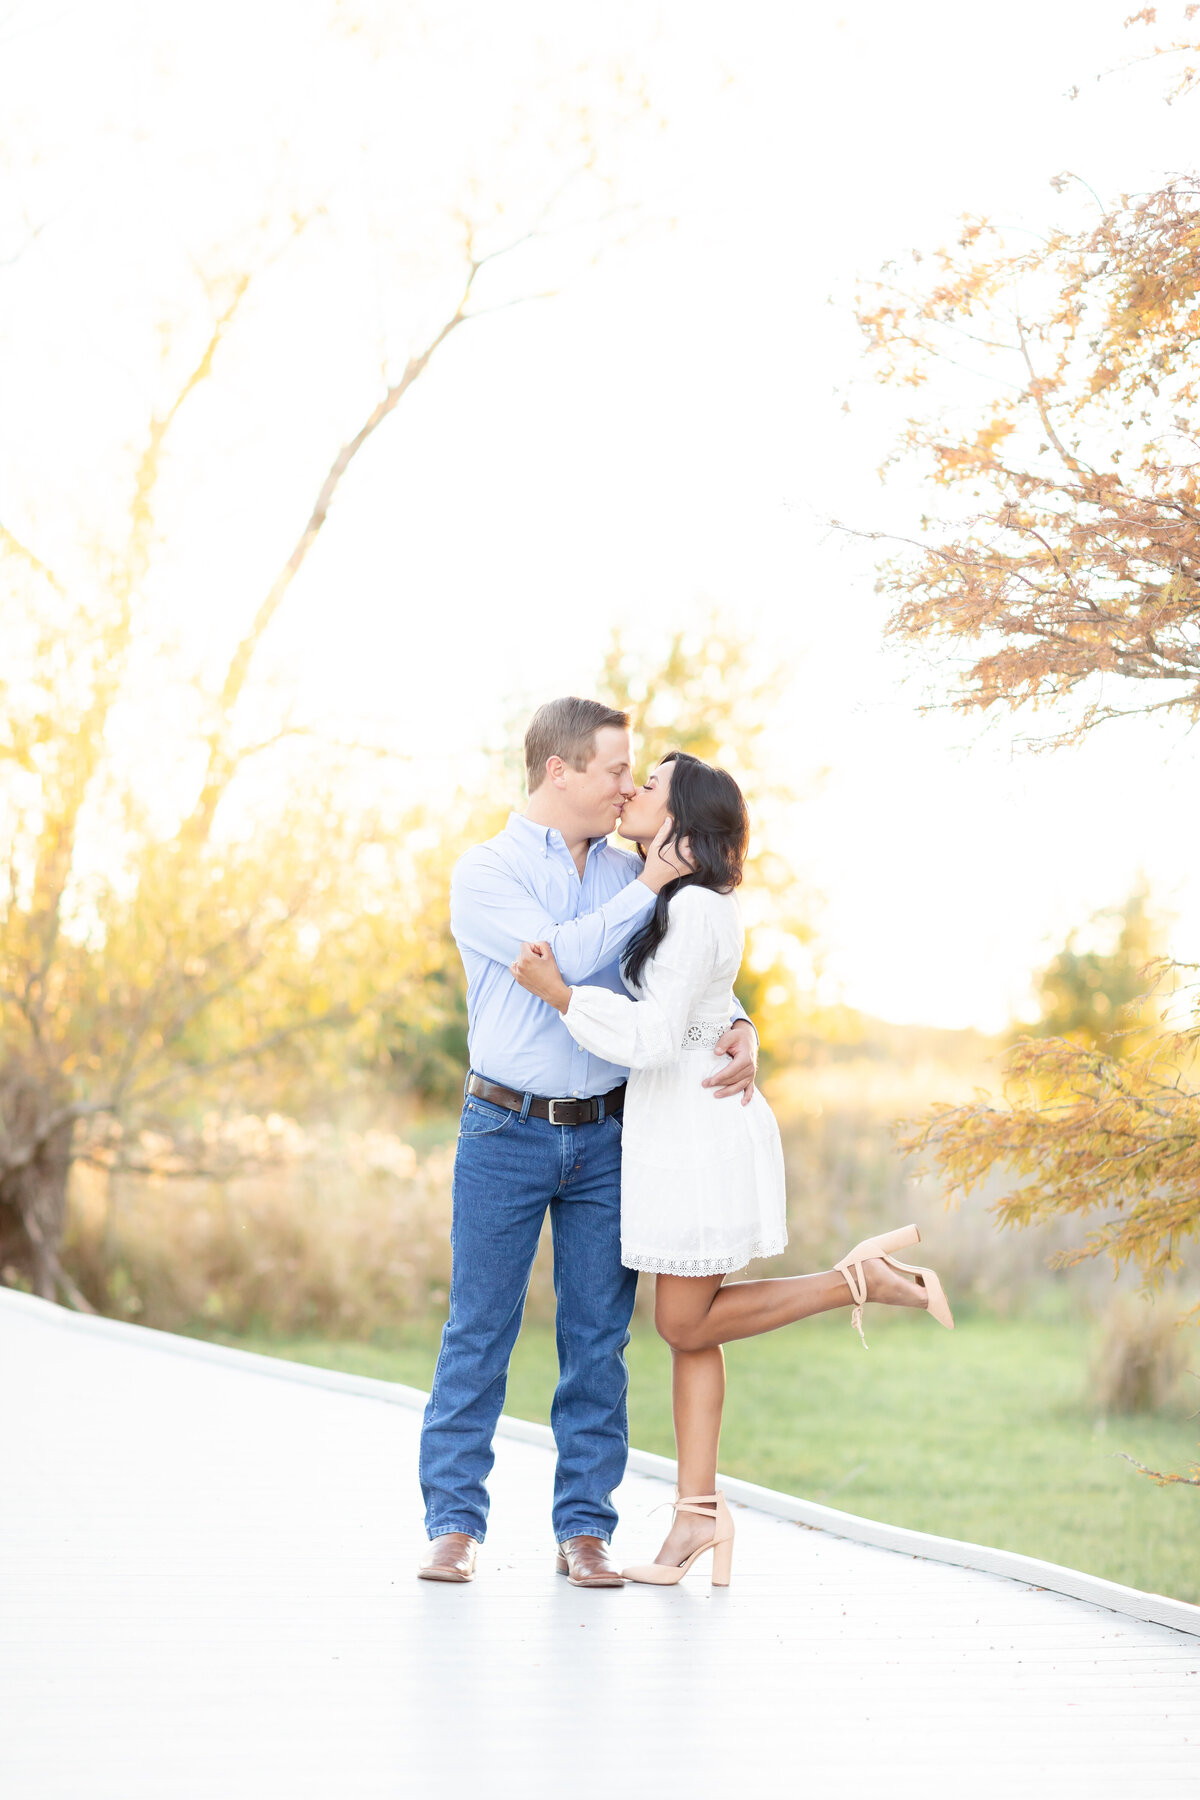 Analicia+Regan_EngagementSession_HannahCharisPhotography-272